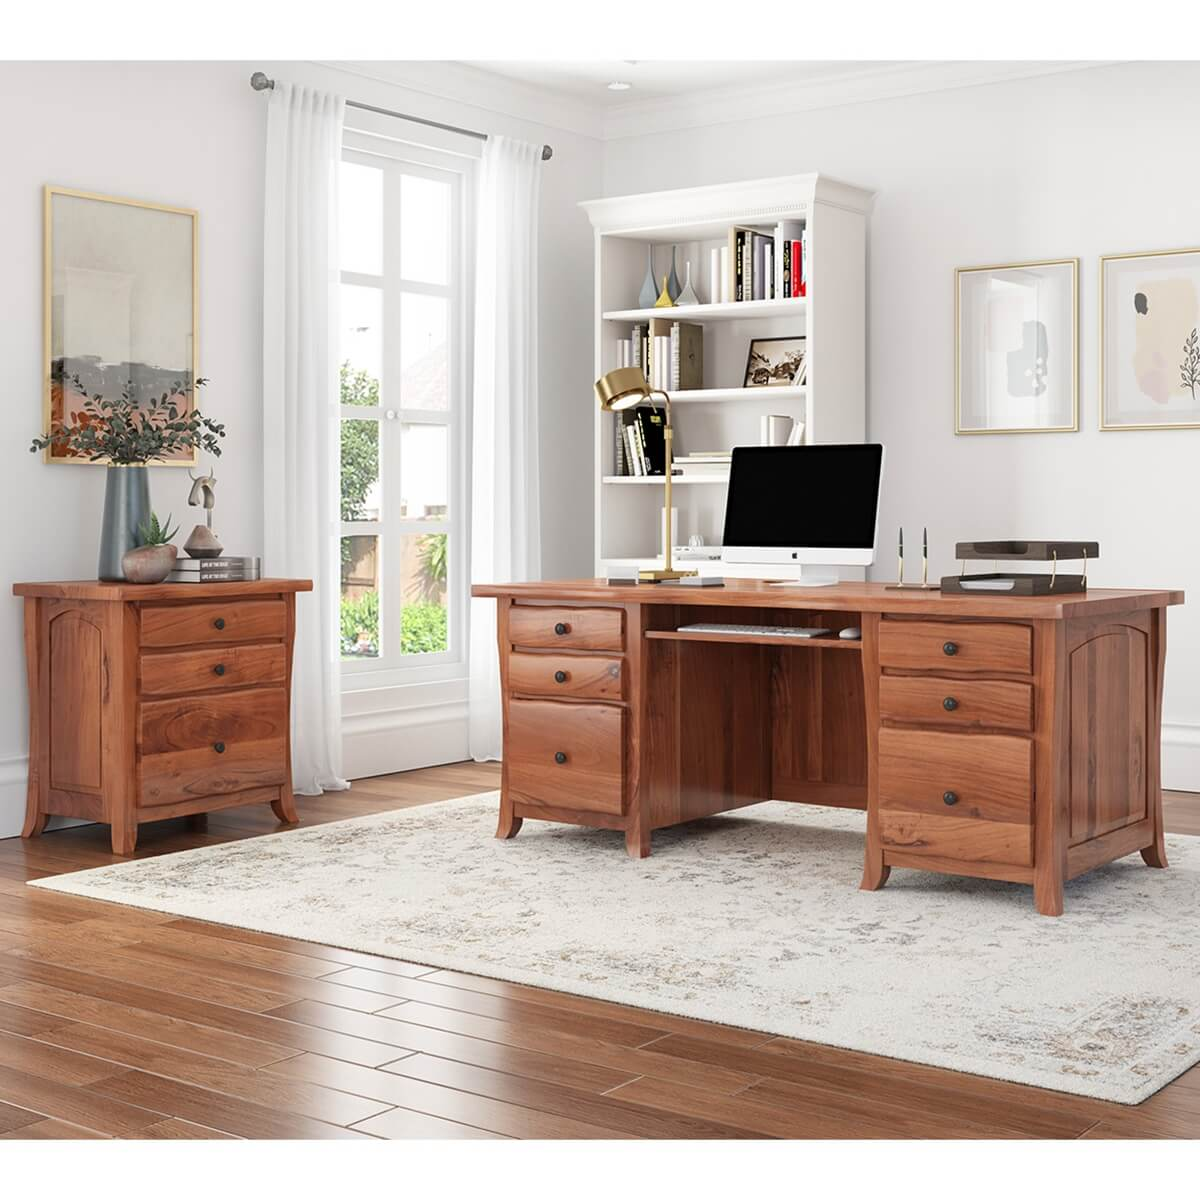 Congleton Live Edge Solid Wood Home Office Executive Desk with File Cabinet